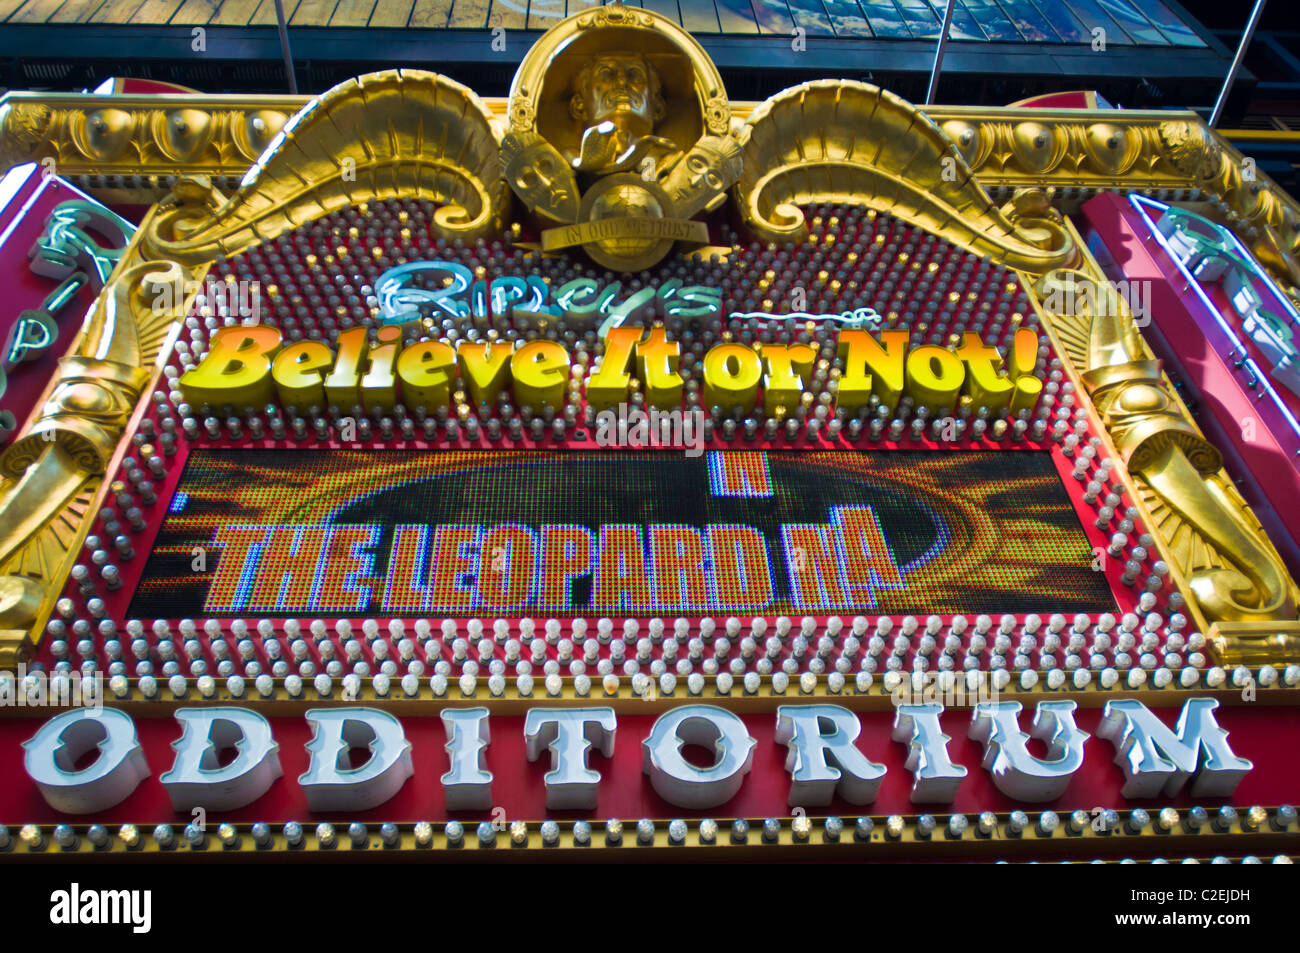 Ripley's Believe It or Not! Odditorium at 42nd Street, Manhattan, New York City, USA - Stock Image